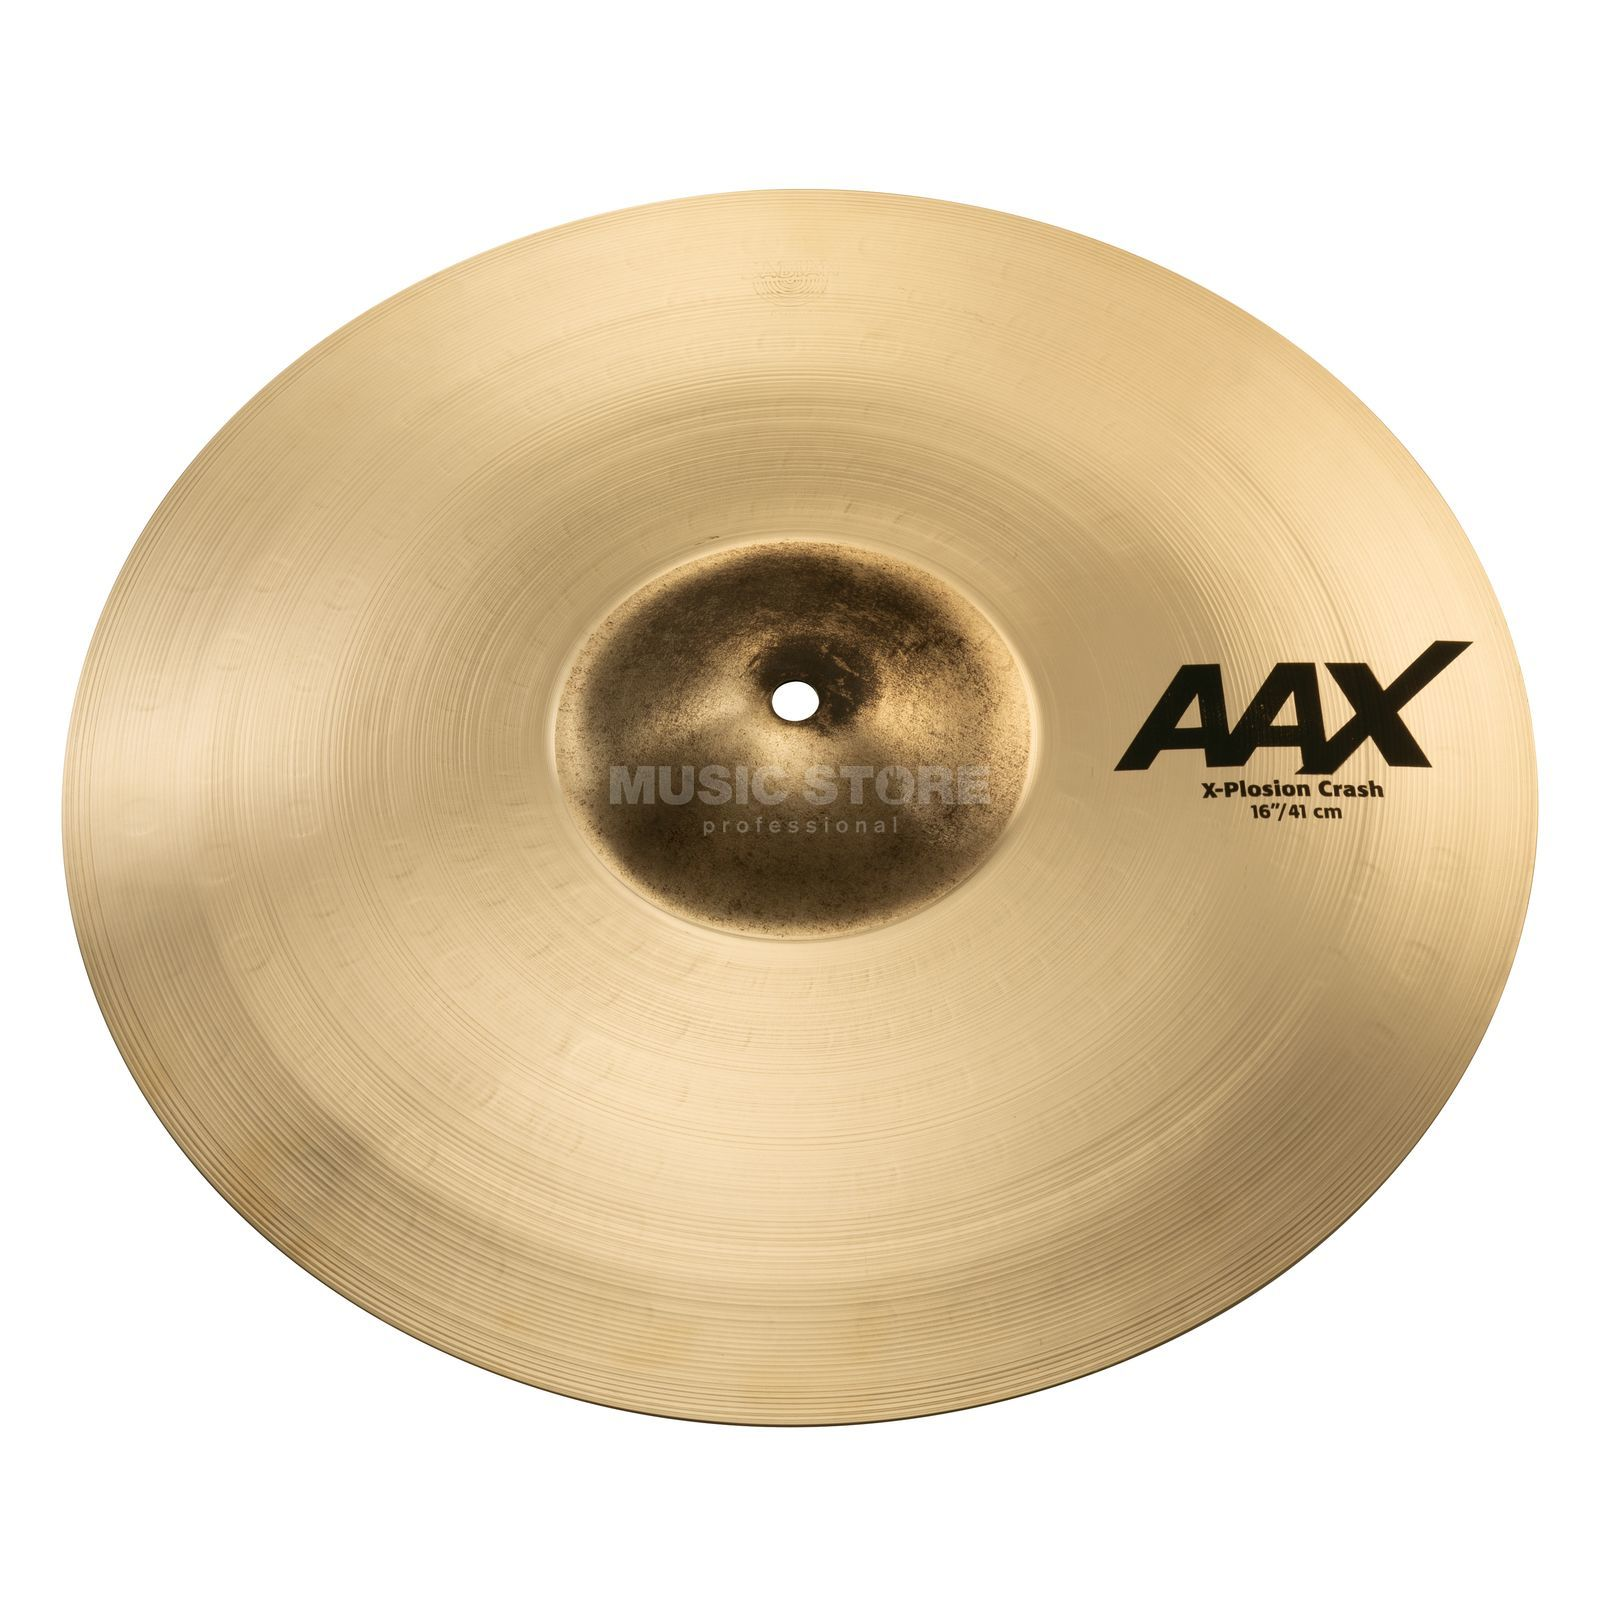 "Sabian AAXplosion Crash 16"" Brilliant Finish Produktbild"